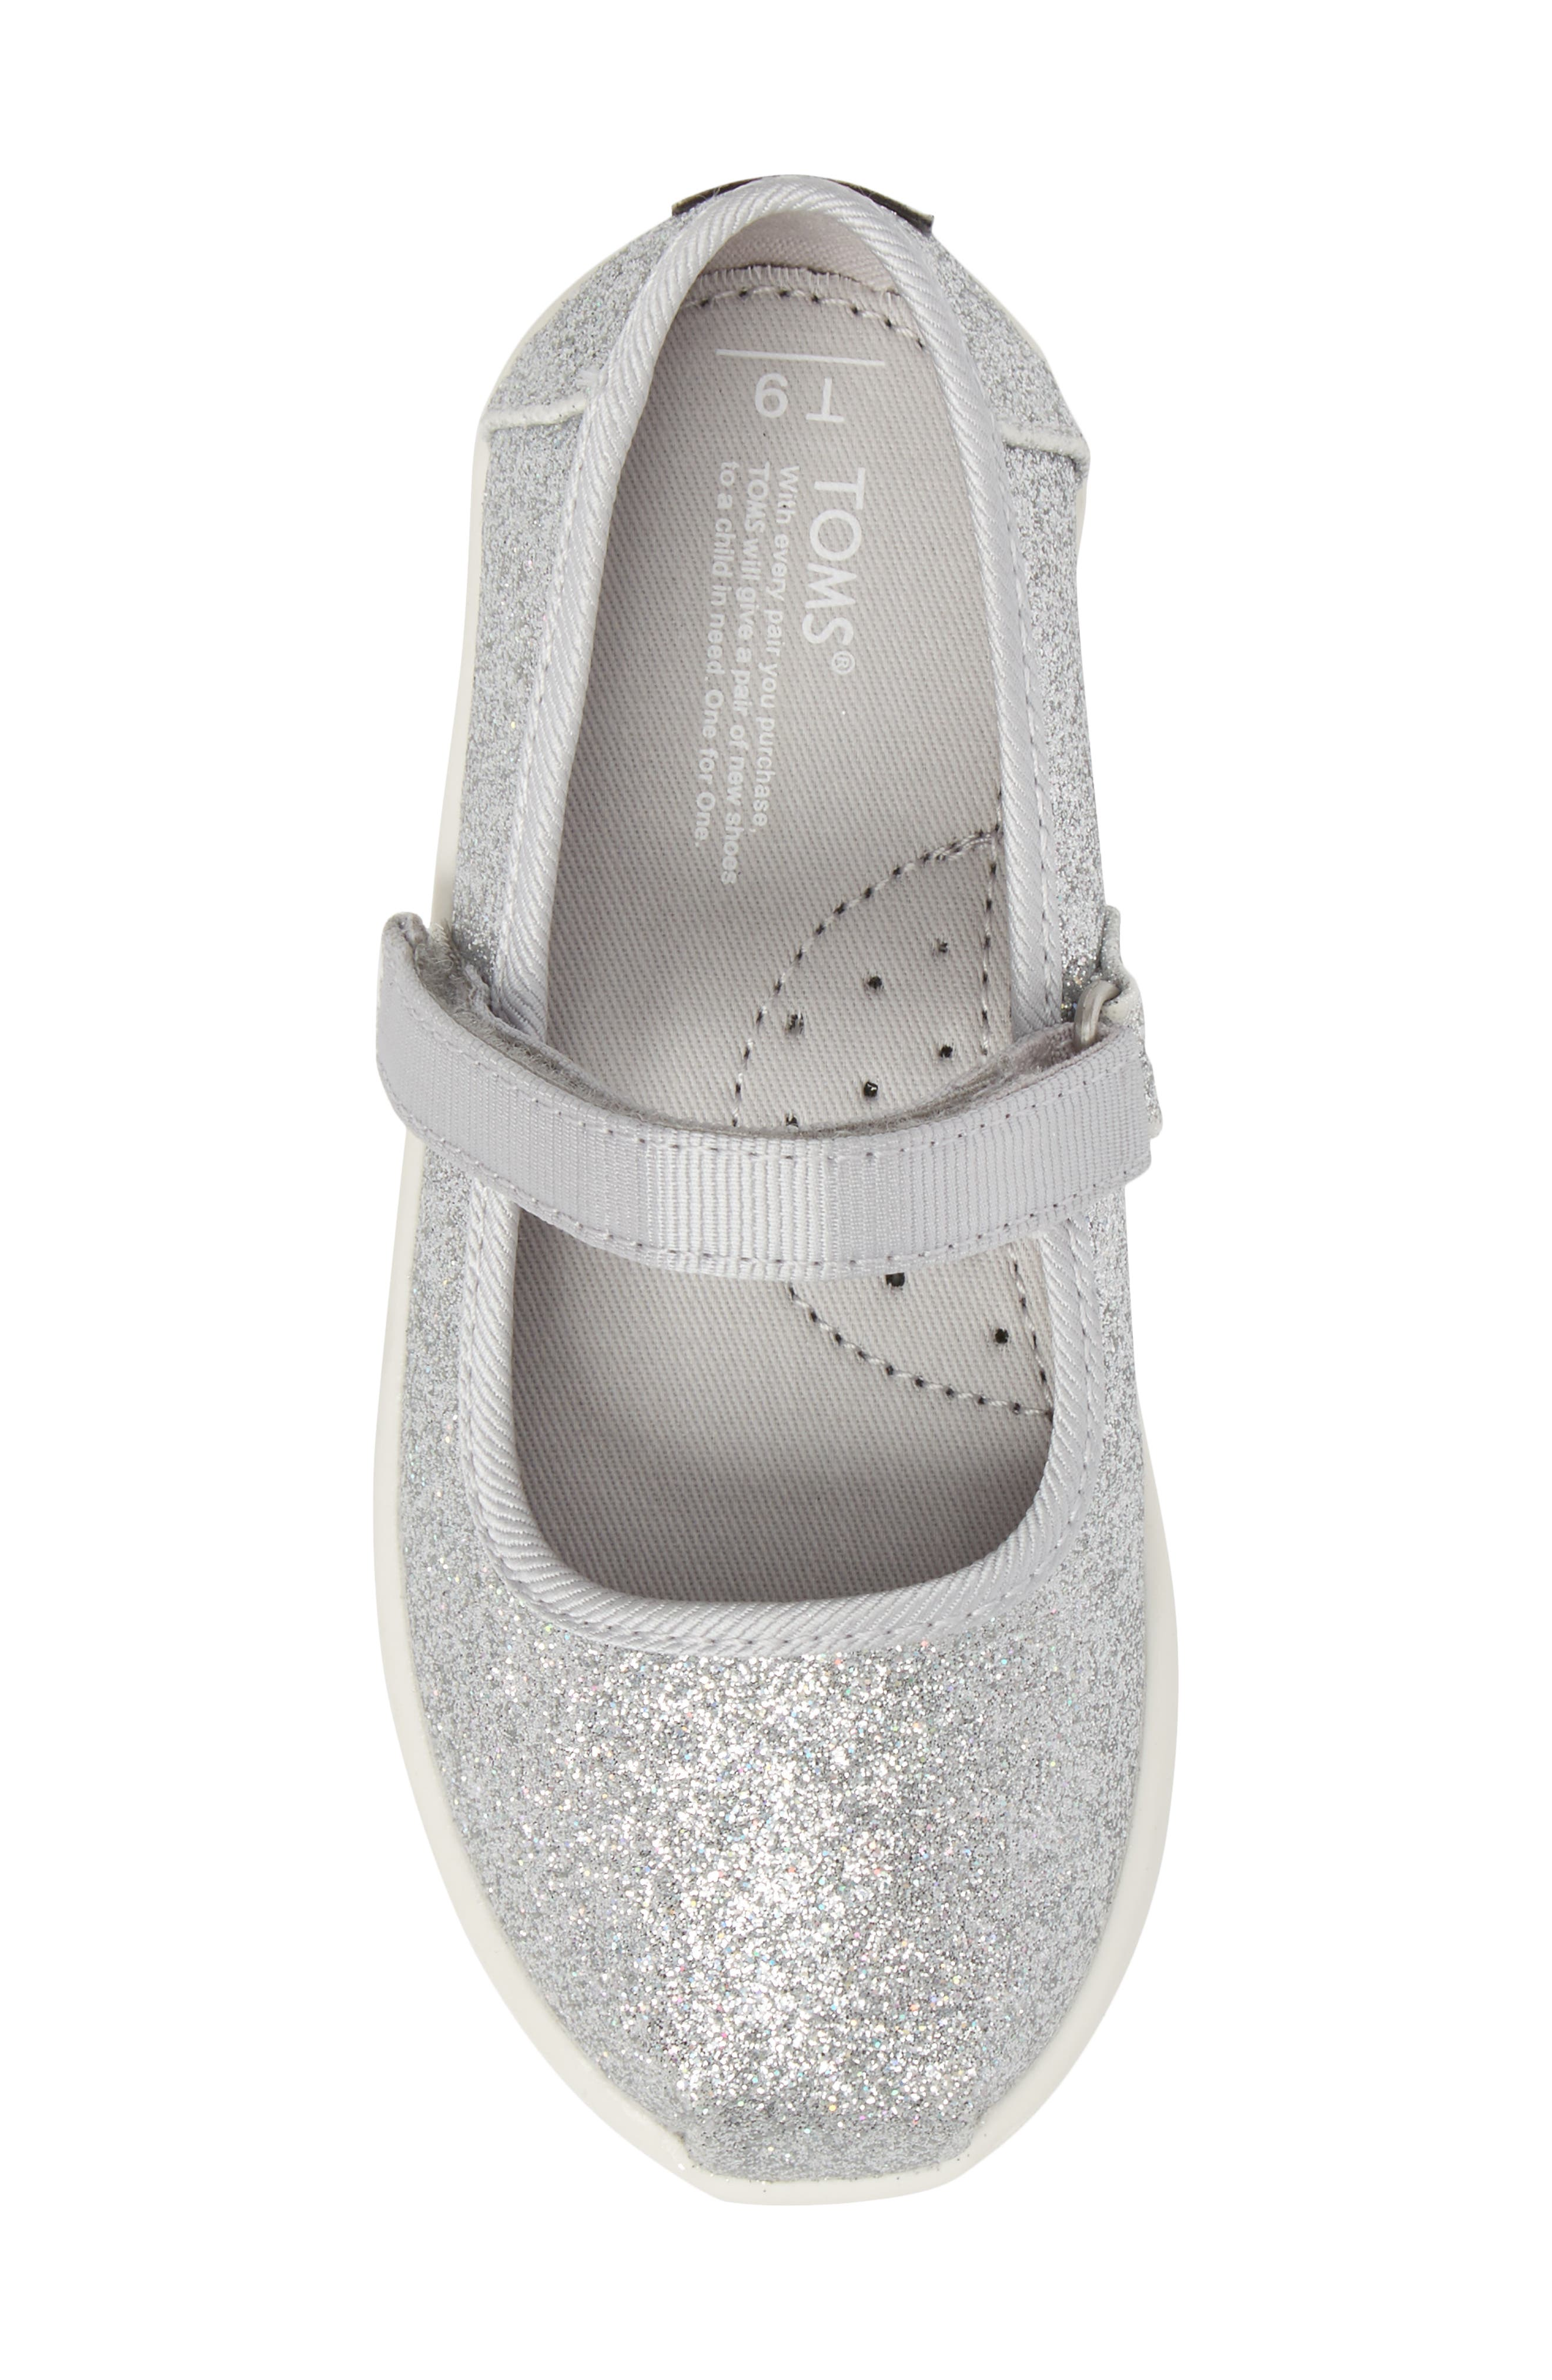 Mary Jane Sneaker,                             Alternate thumbnail 5, color,                             Silver Iridescent Glimmer